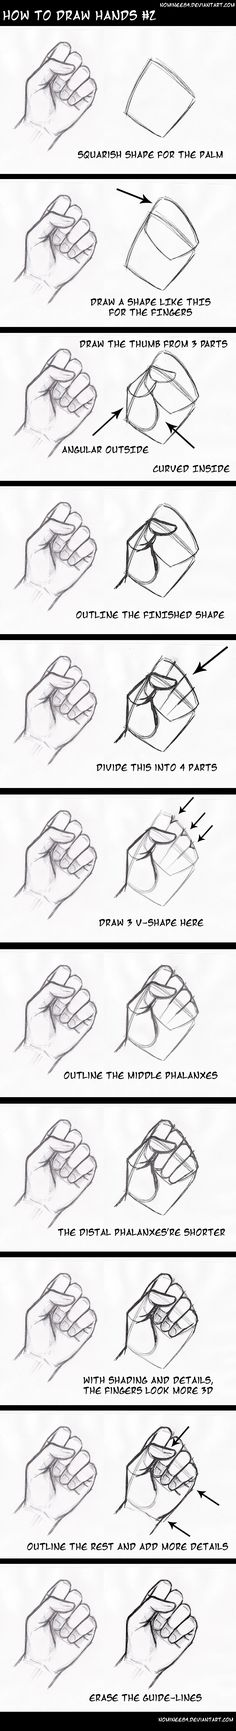 how to draw hands2 by nominee84.deviantart.com on @DeviantArt